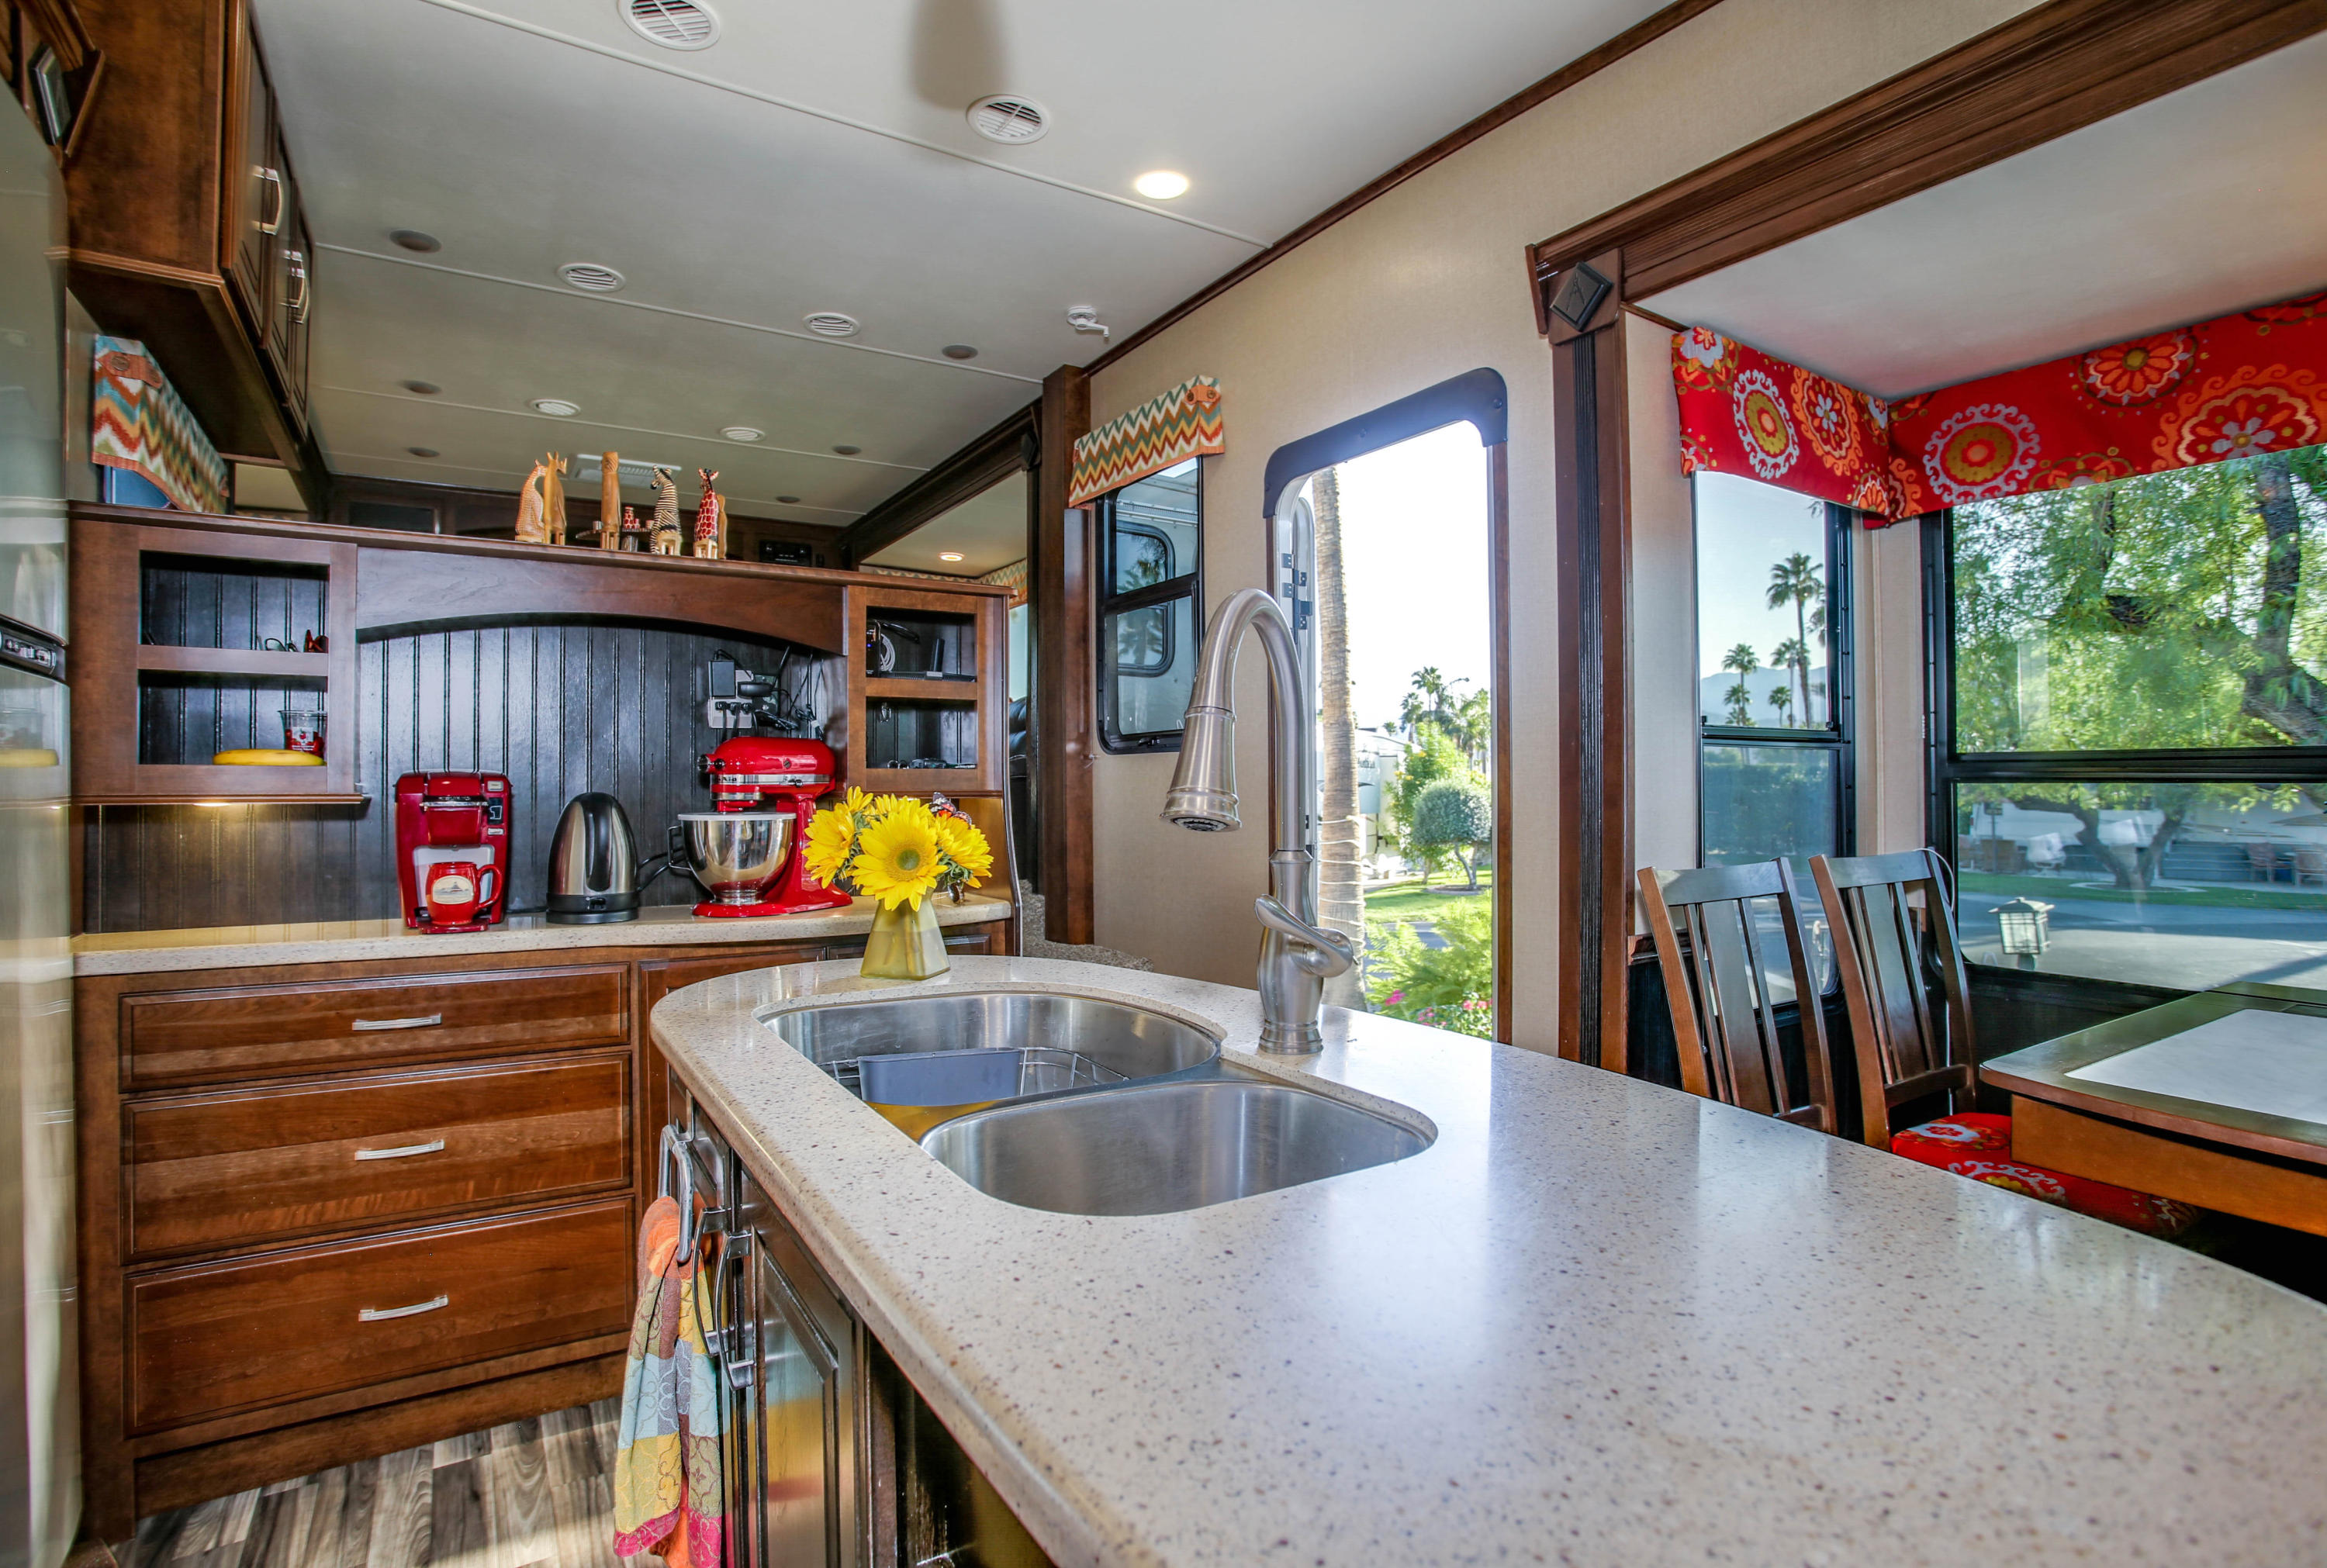 69411 Ramon Road, Cathedral City, California 92234, ,Land,For Sale,69411 Ramon Road,219033648